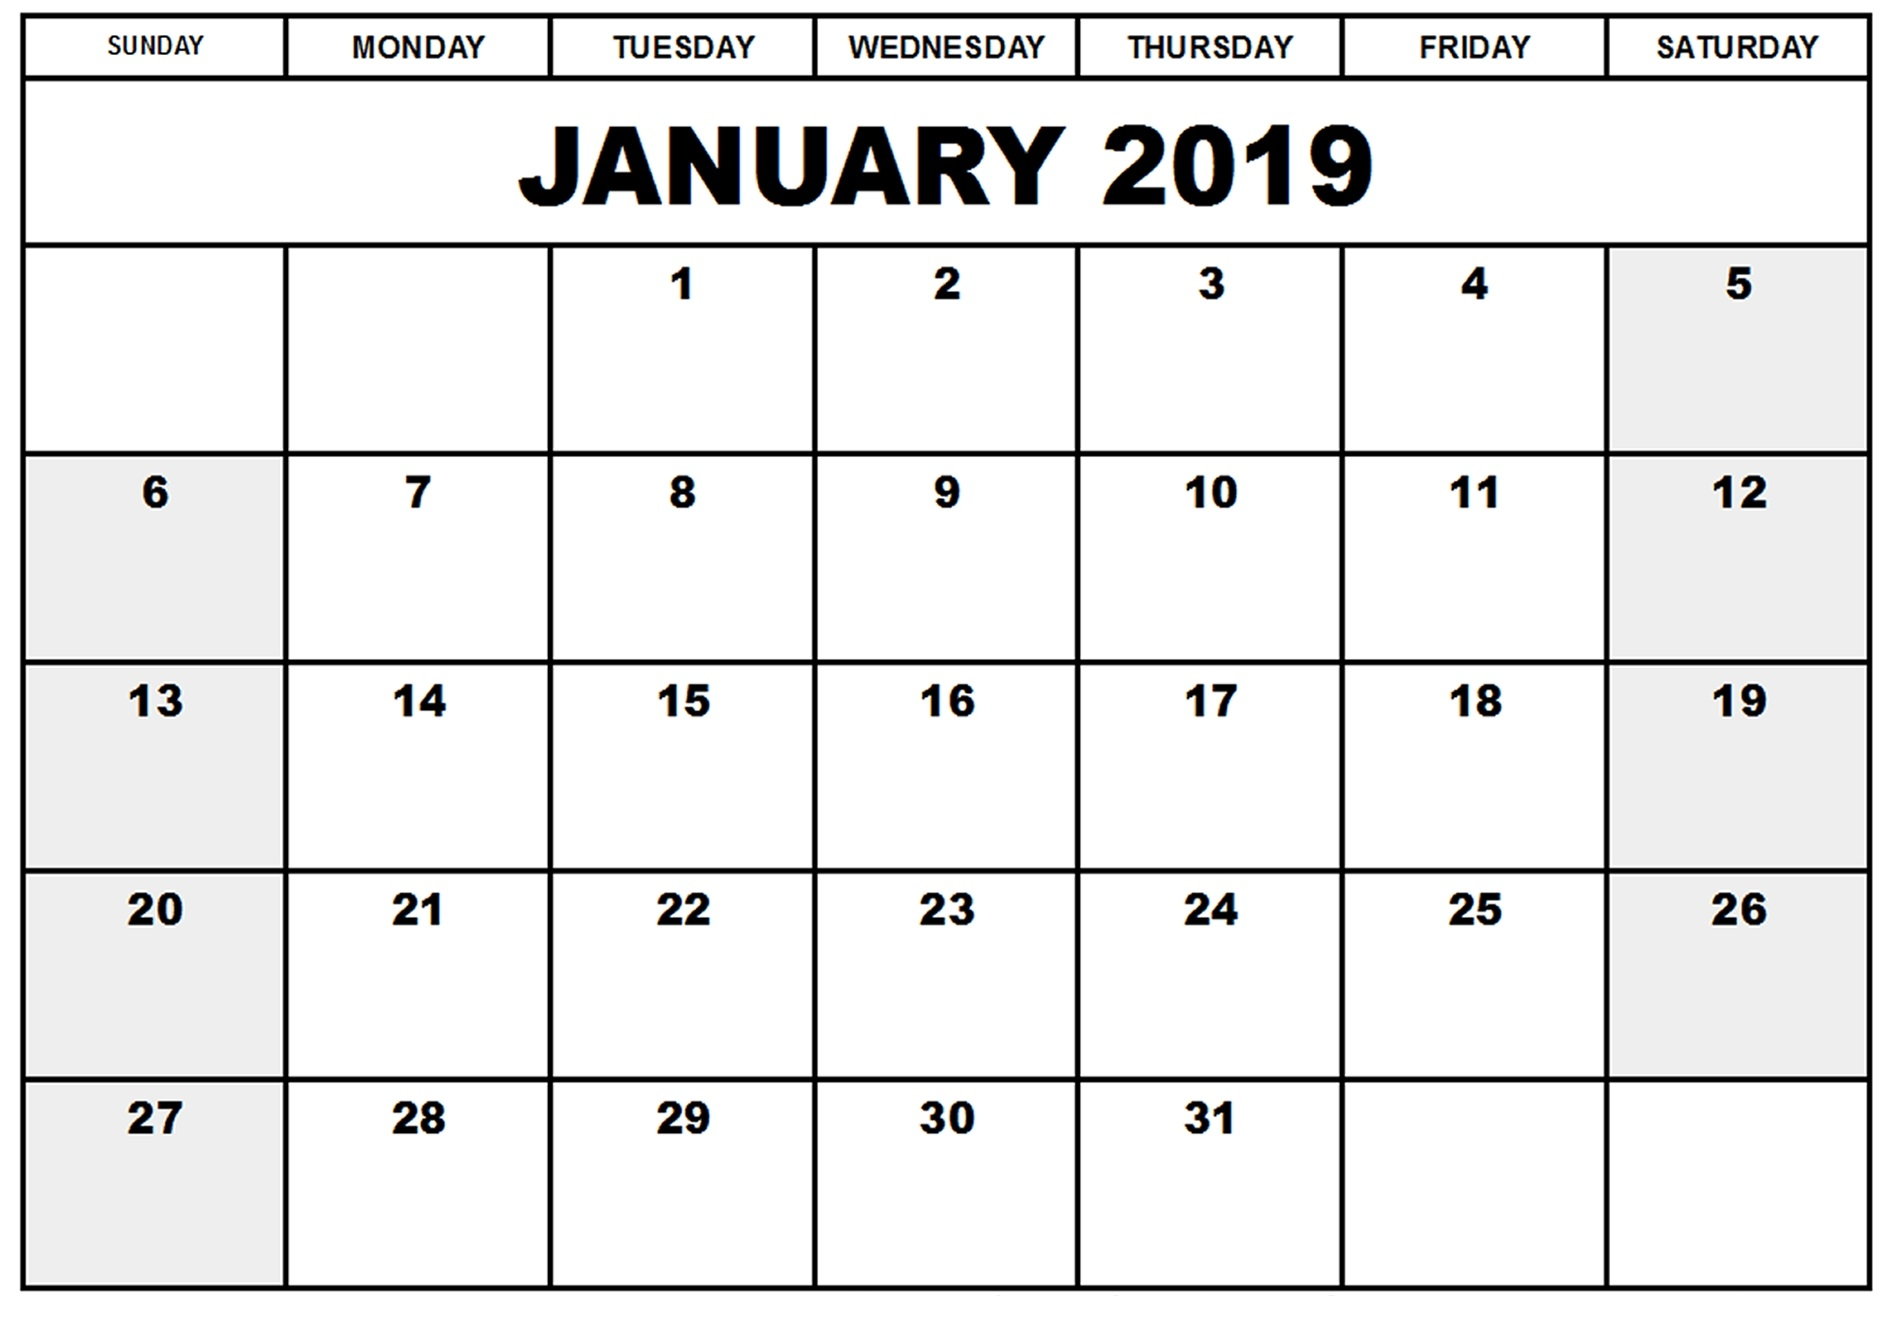 January 2019 Calendar Printable Daily